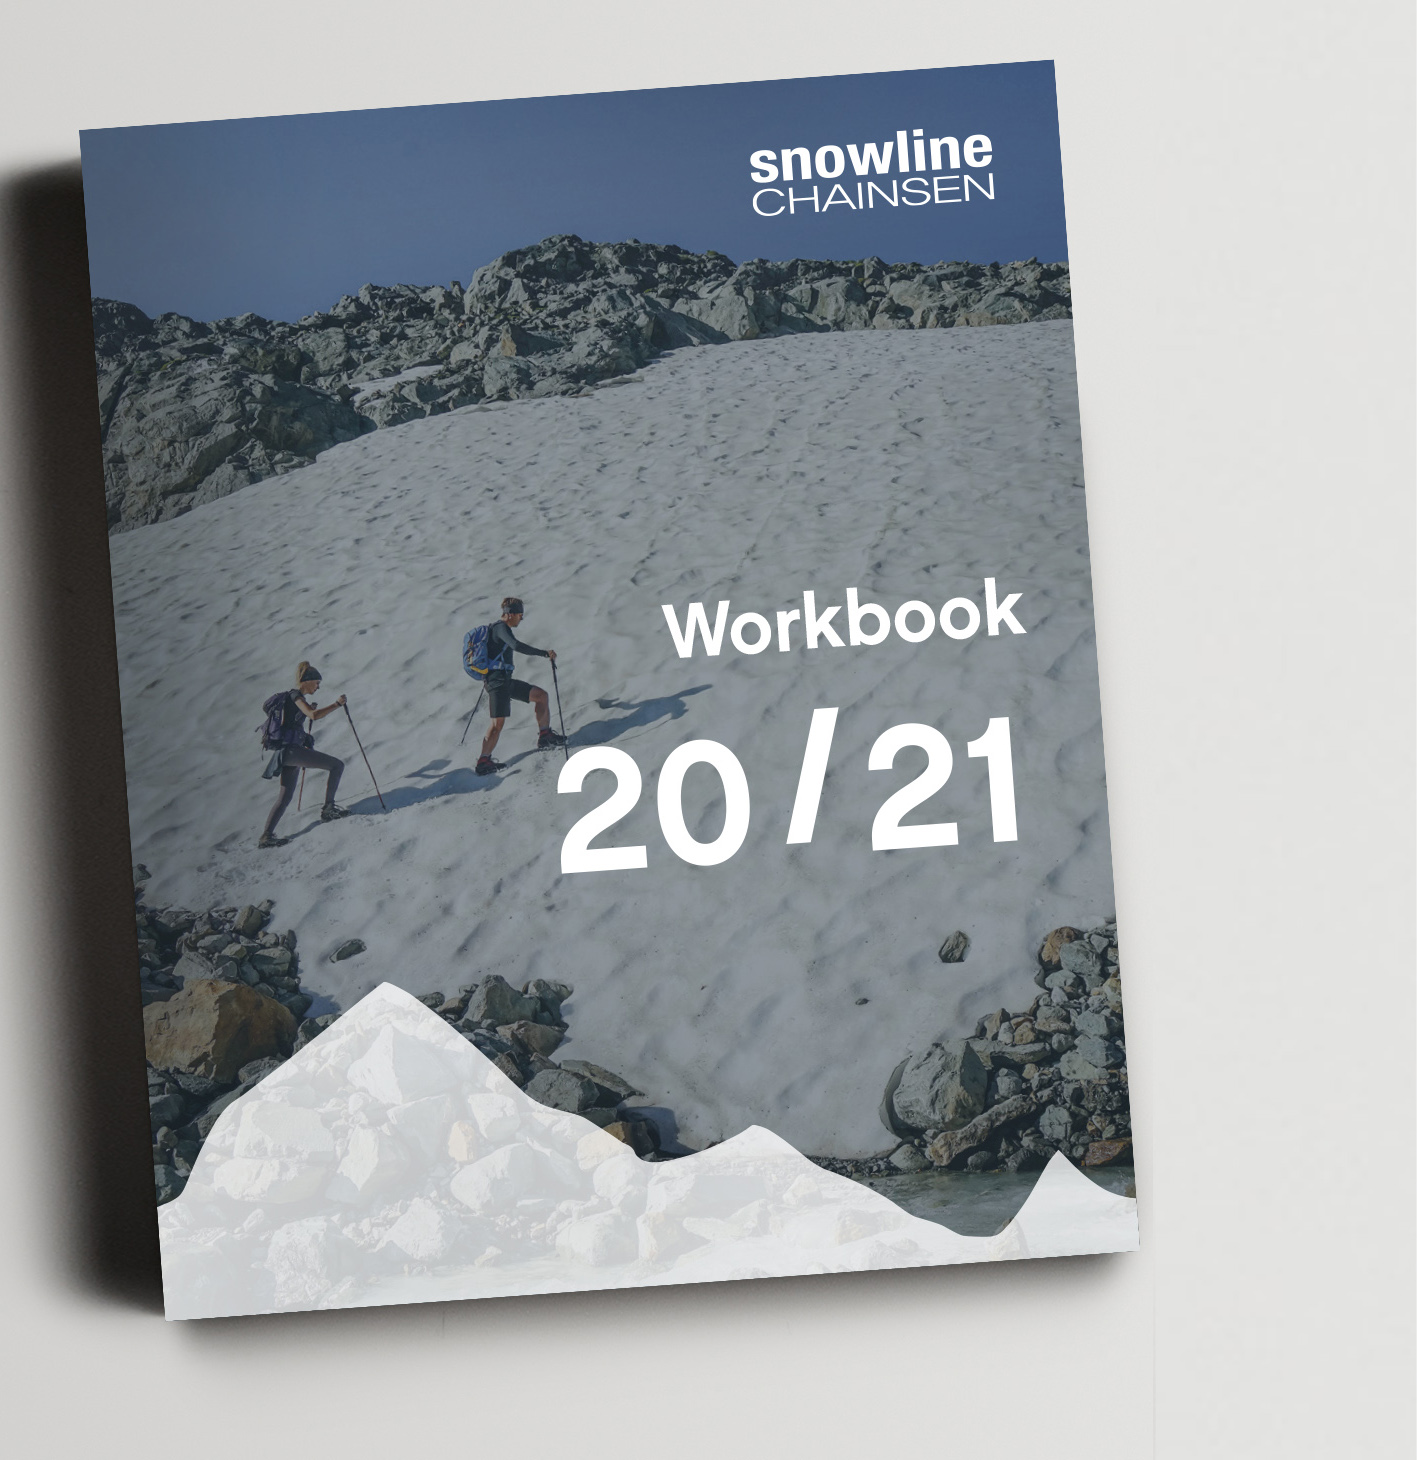 20|21 Workbook snowline